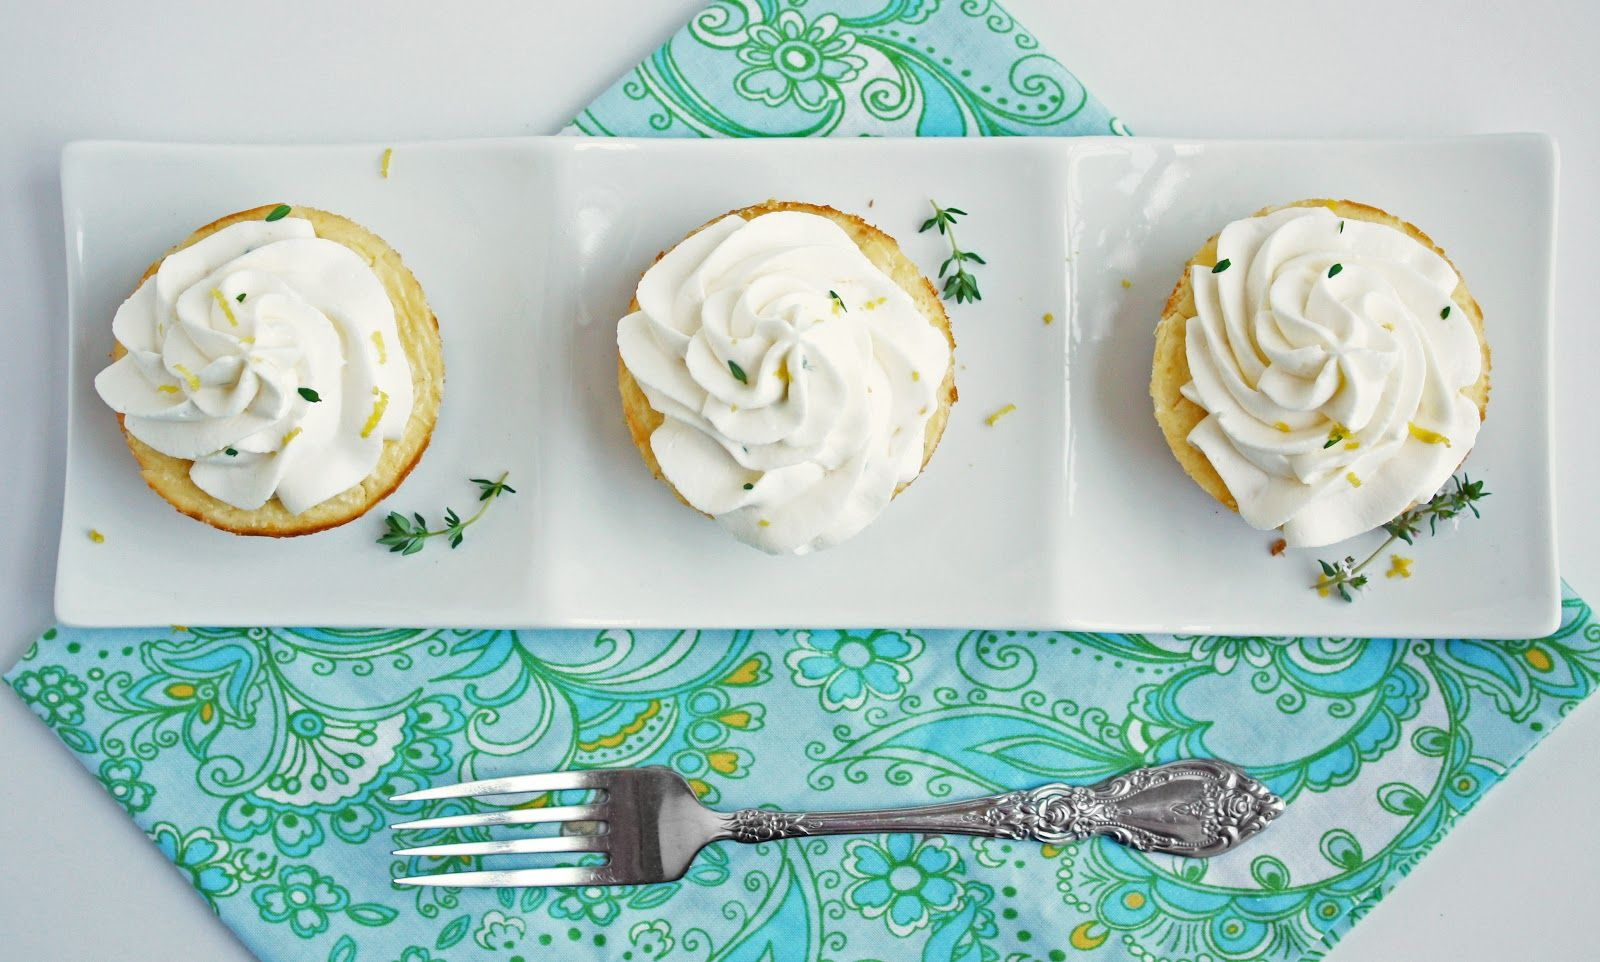 Lemon, Thyme & Chevre Cheesecakes - I Breathe... Im Hungry... low carb goodness!